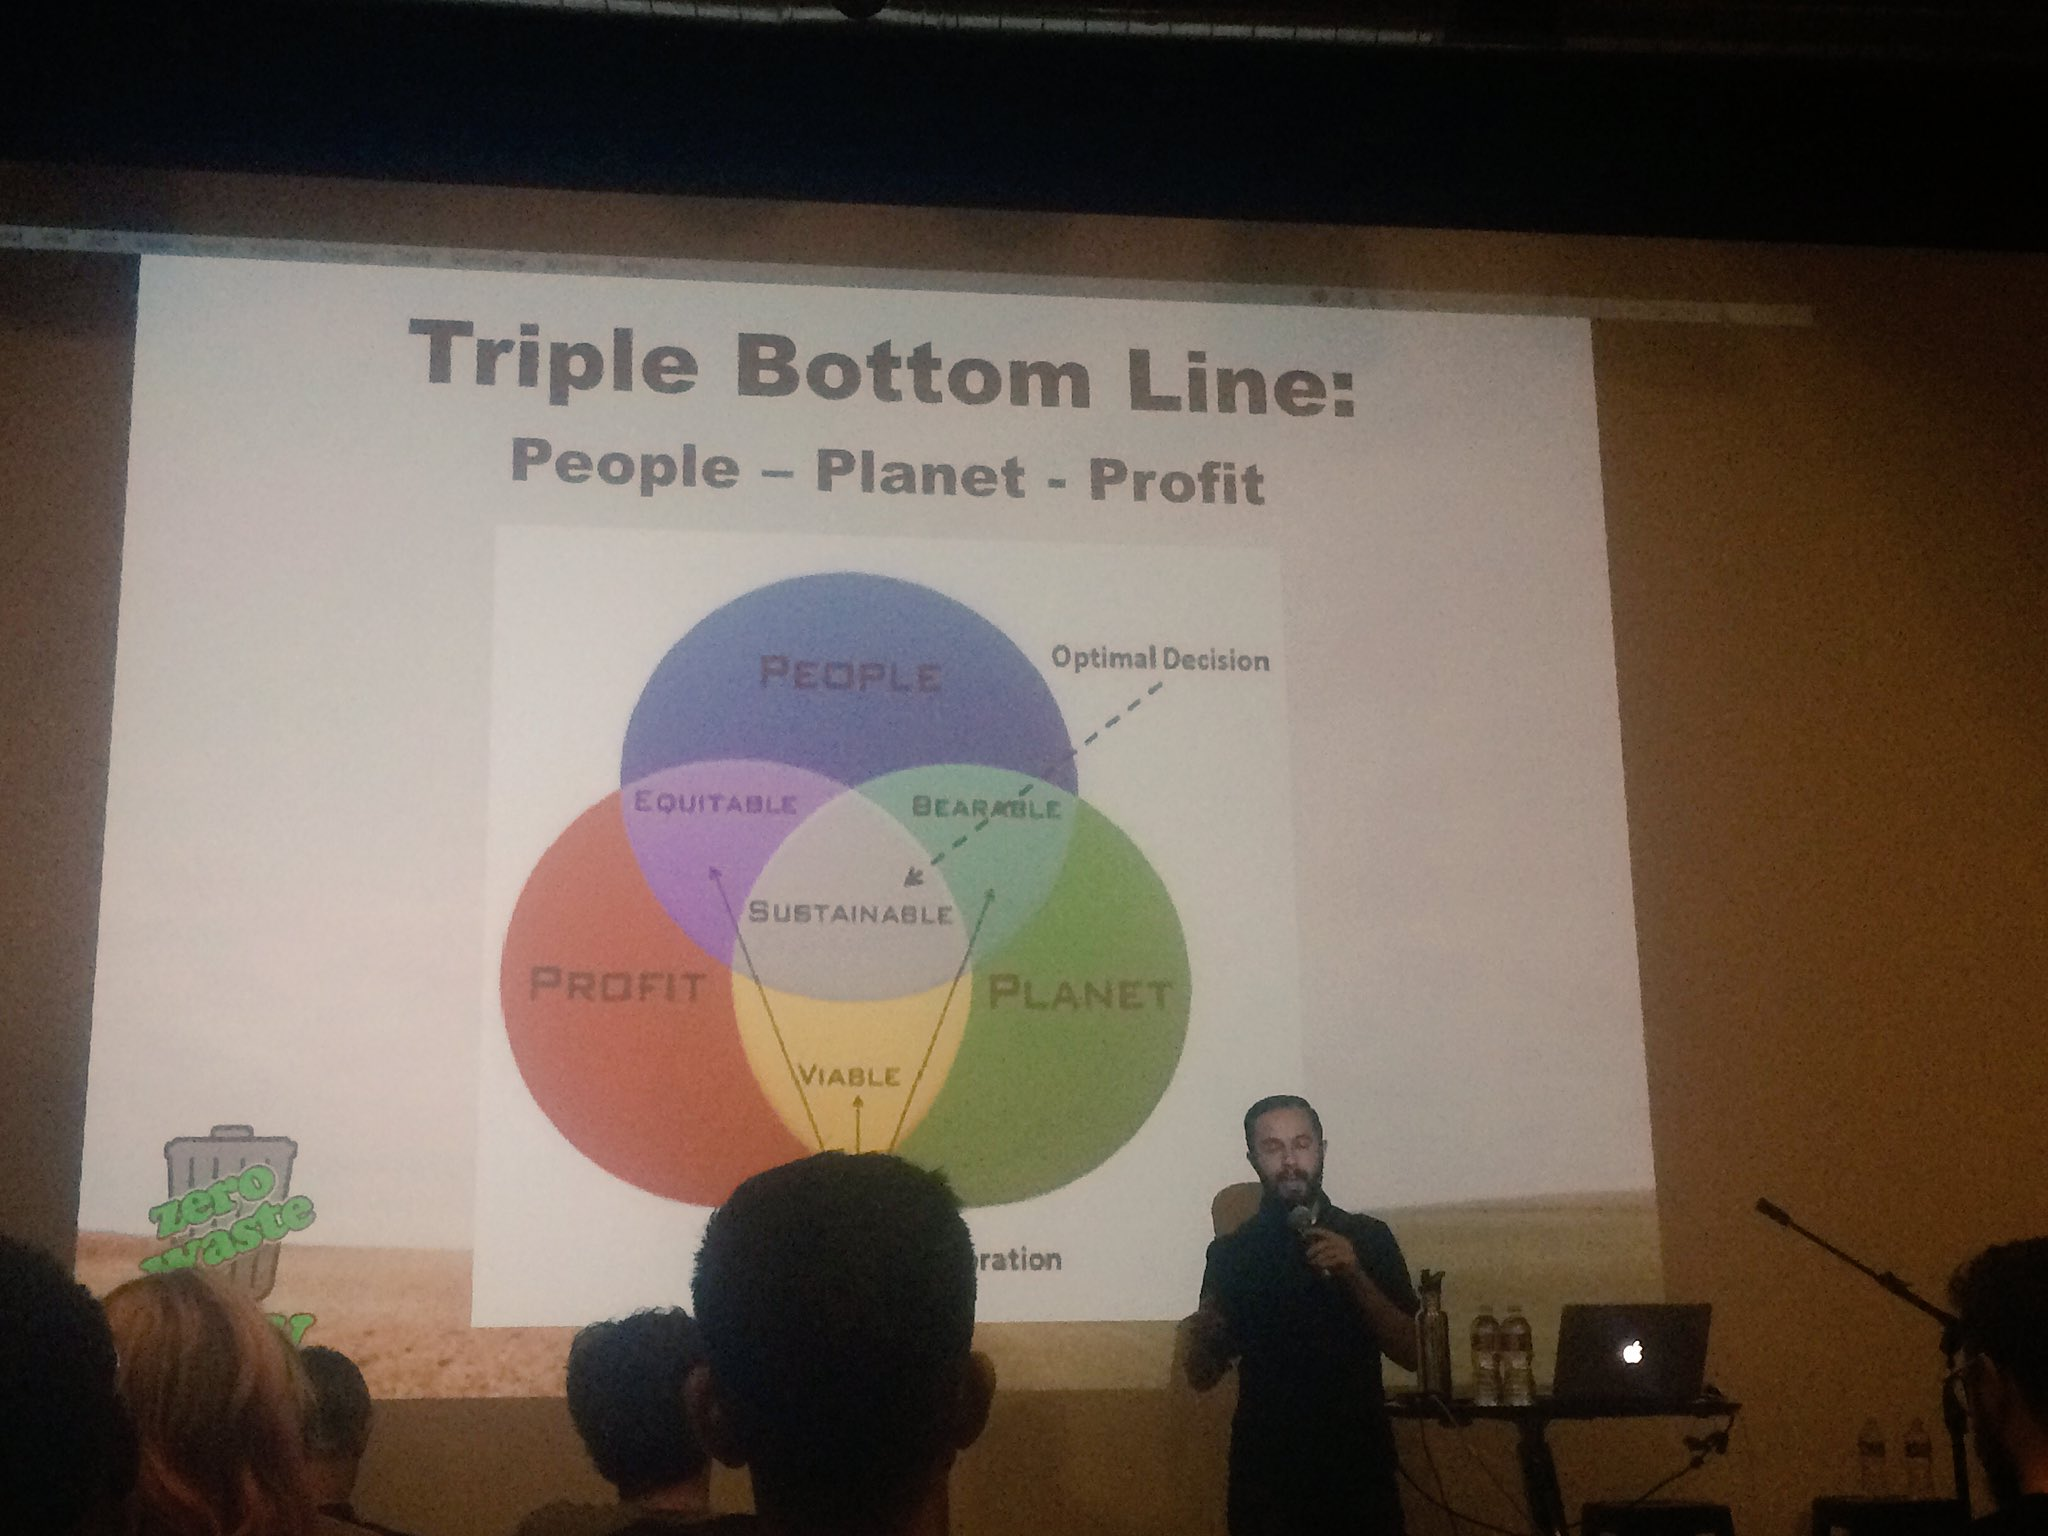 Triple profit principle of sustainability. Design with this in mind! @zerowasteguy1 #wud16la https://t.co/LaWxtRJbfY